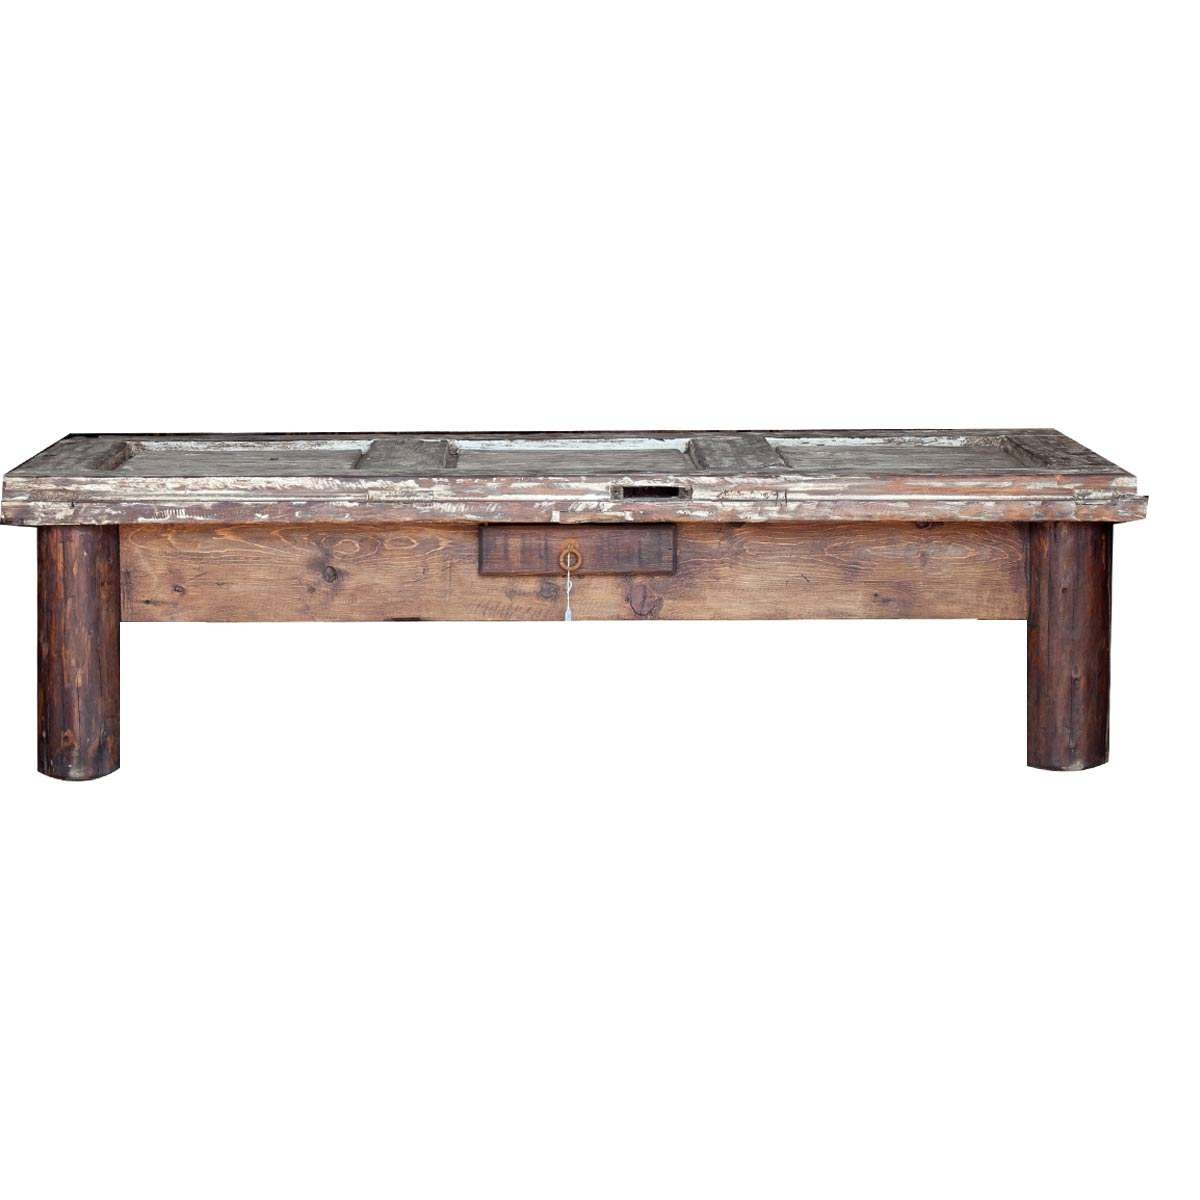 Well Known Antique Rustic Coffee Tables In Rustic Coffee Tables (View 19 of 20)